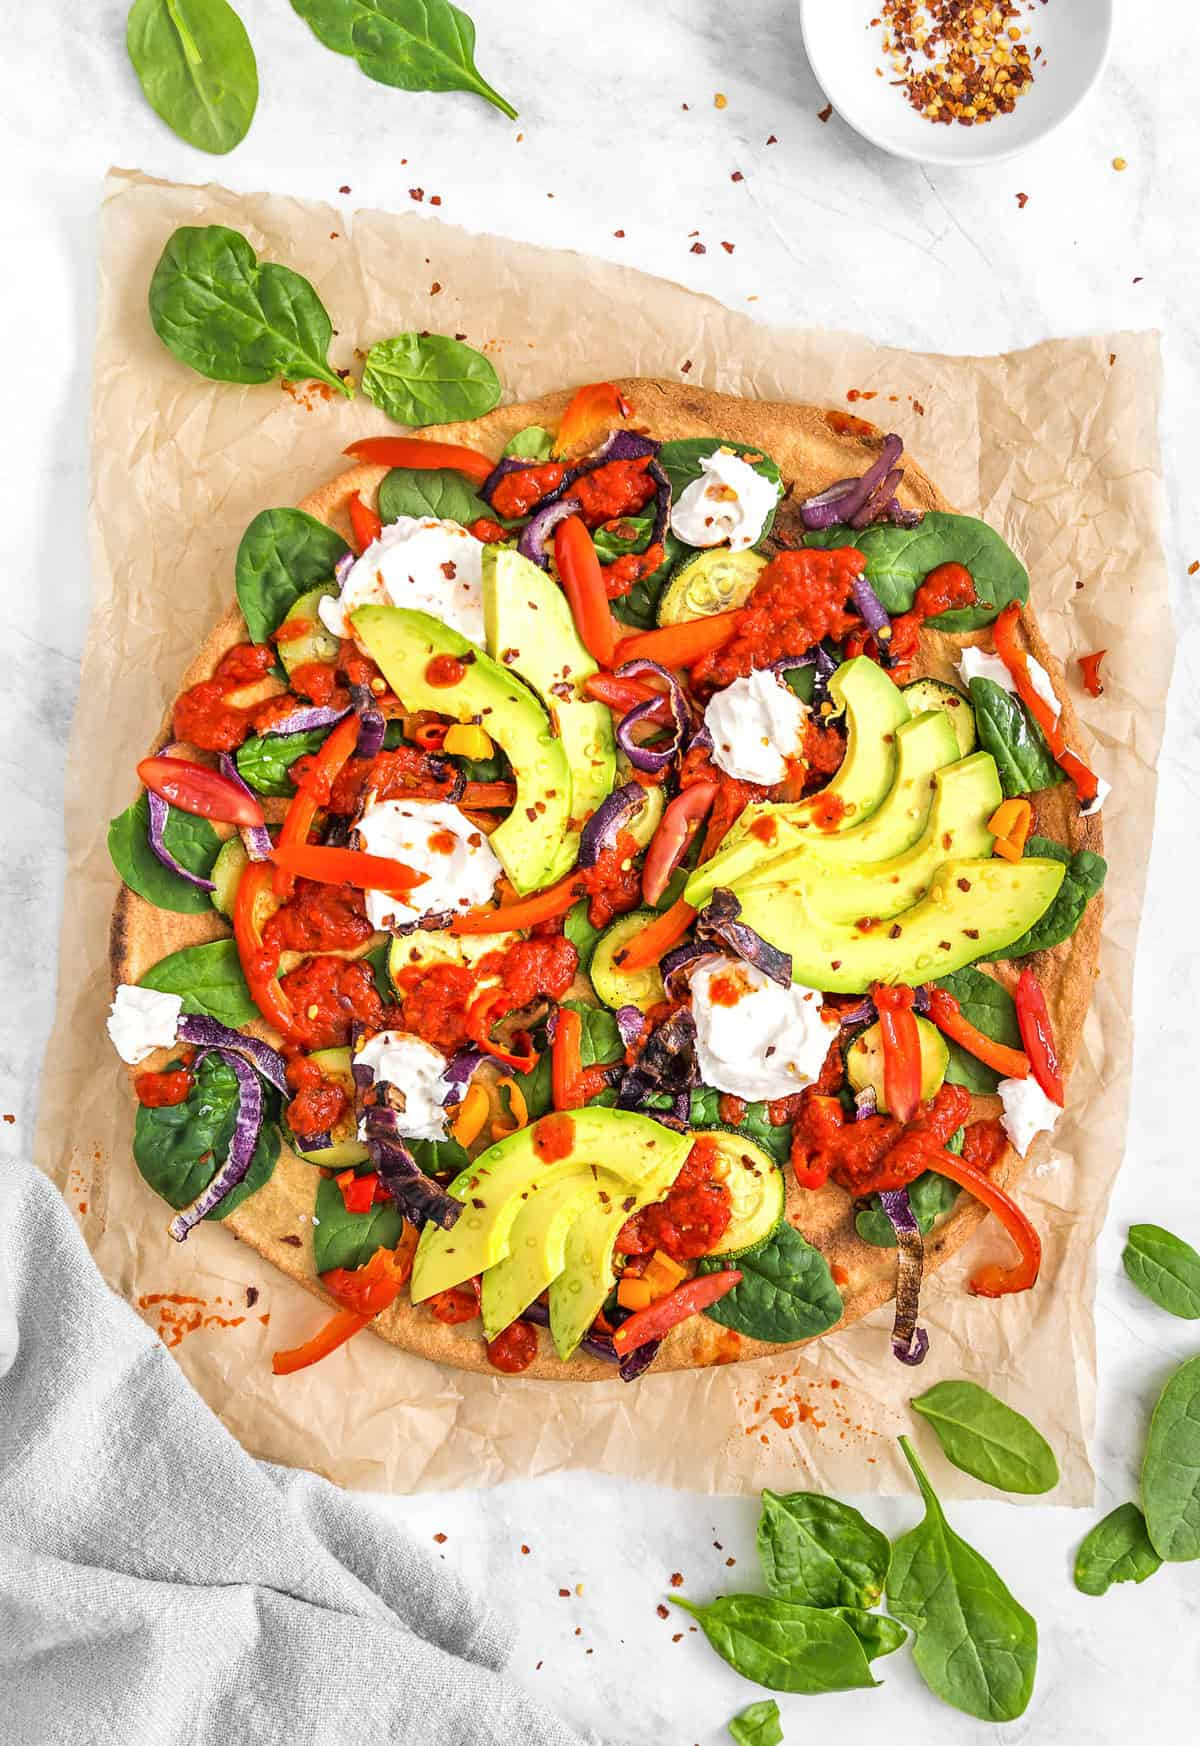 Roasted Veggie with Red Pepper Sauce Pizza, roasted vegetables, vegetables, red pepper sauce, pizza, plant based, vegan, vegetarian, whole food plant based, gluten free, recipe, wfpb, healthy, healthy vegan, oil free, no refined sugar, no oil, refined sugar free, dairy free, dinner, lunch, veggies, vegan pizza